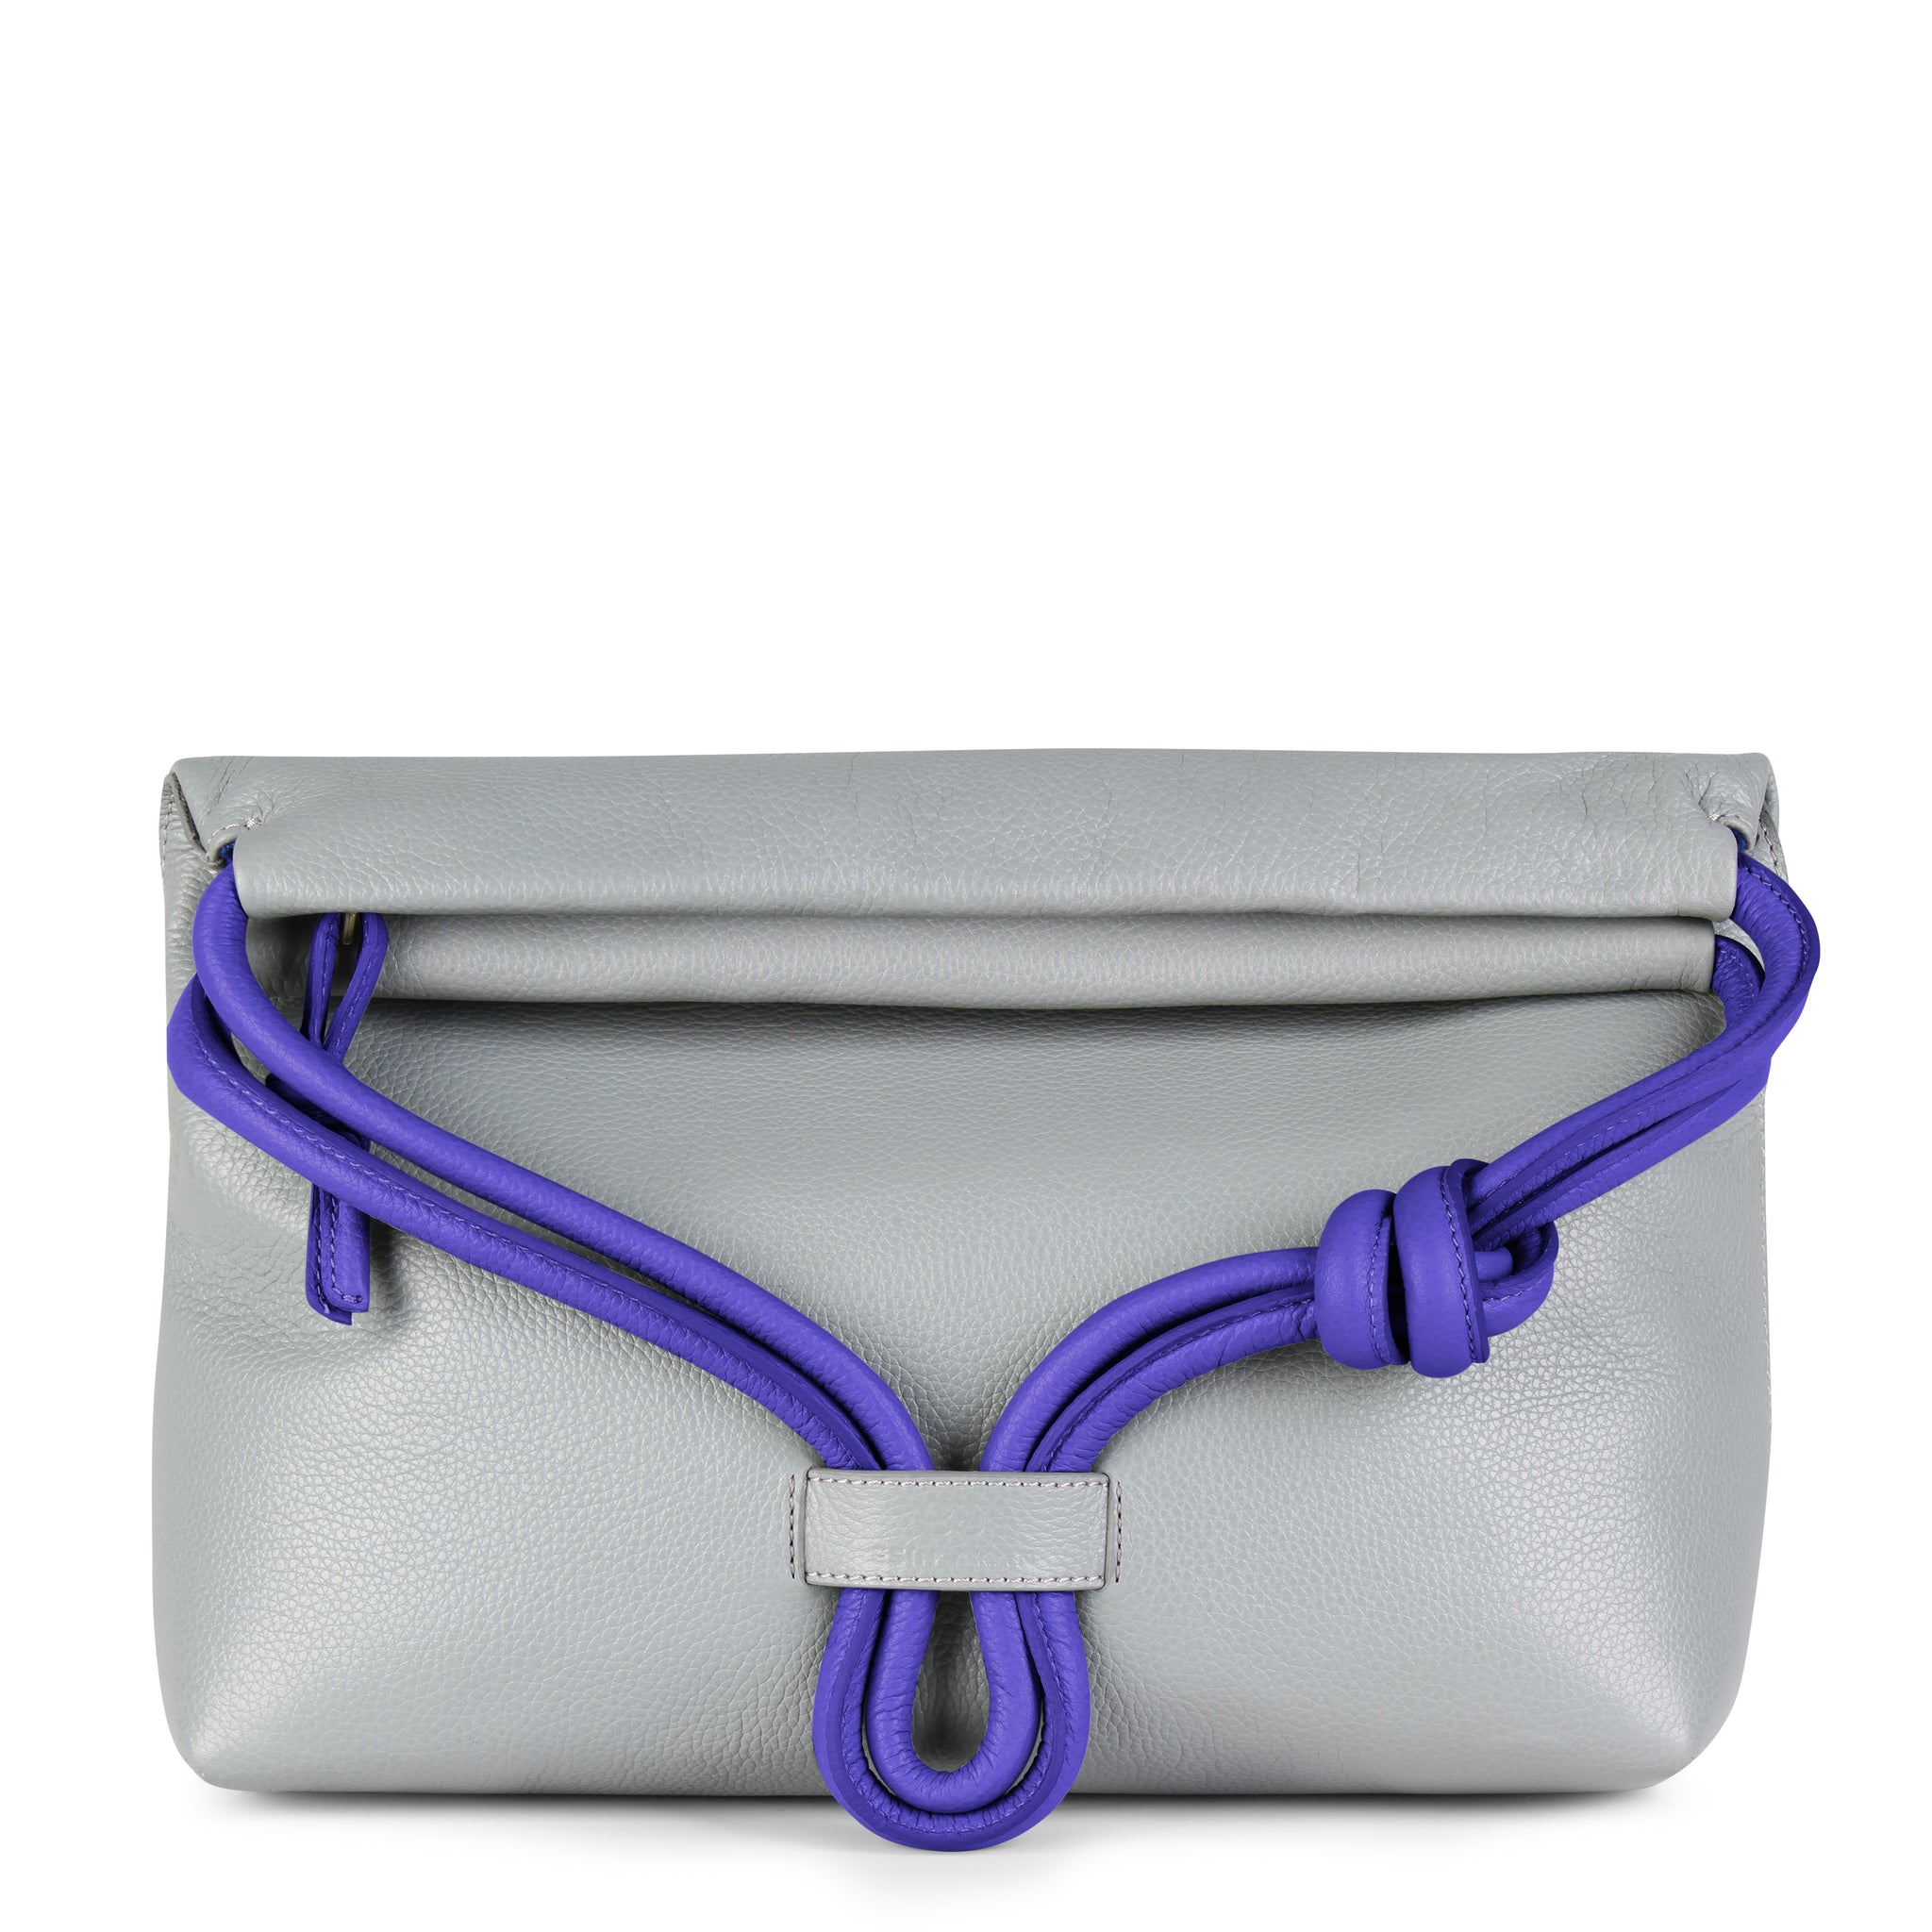 A convertible leather blue and grey shoulder bag for women with a knot detail on the strap shown as a clutch bag, front image.